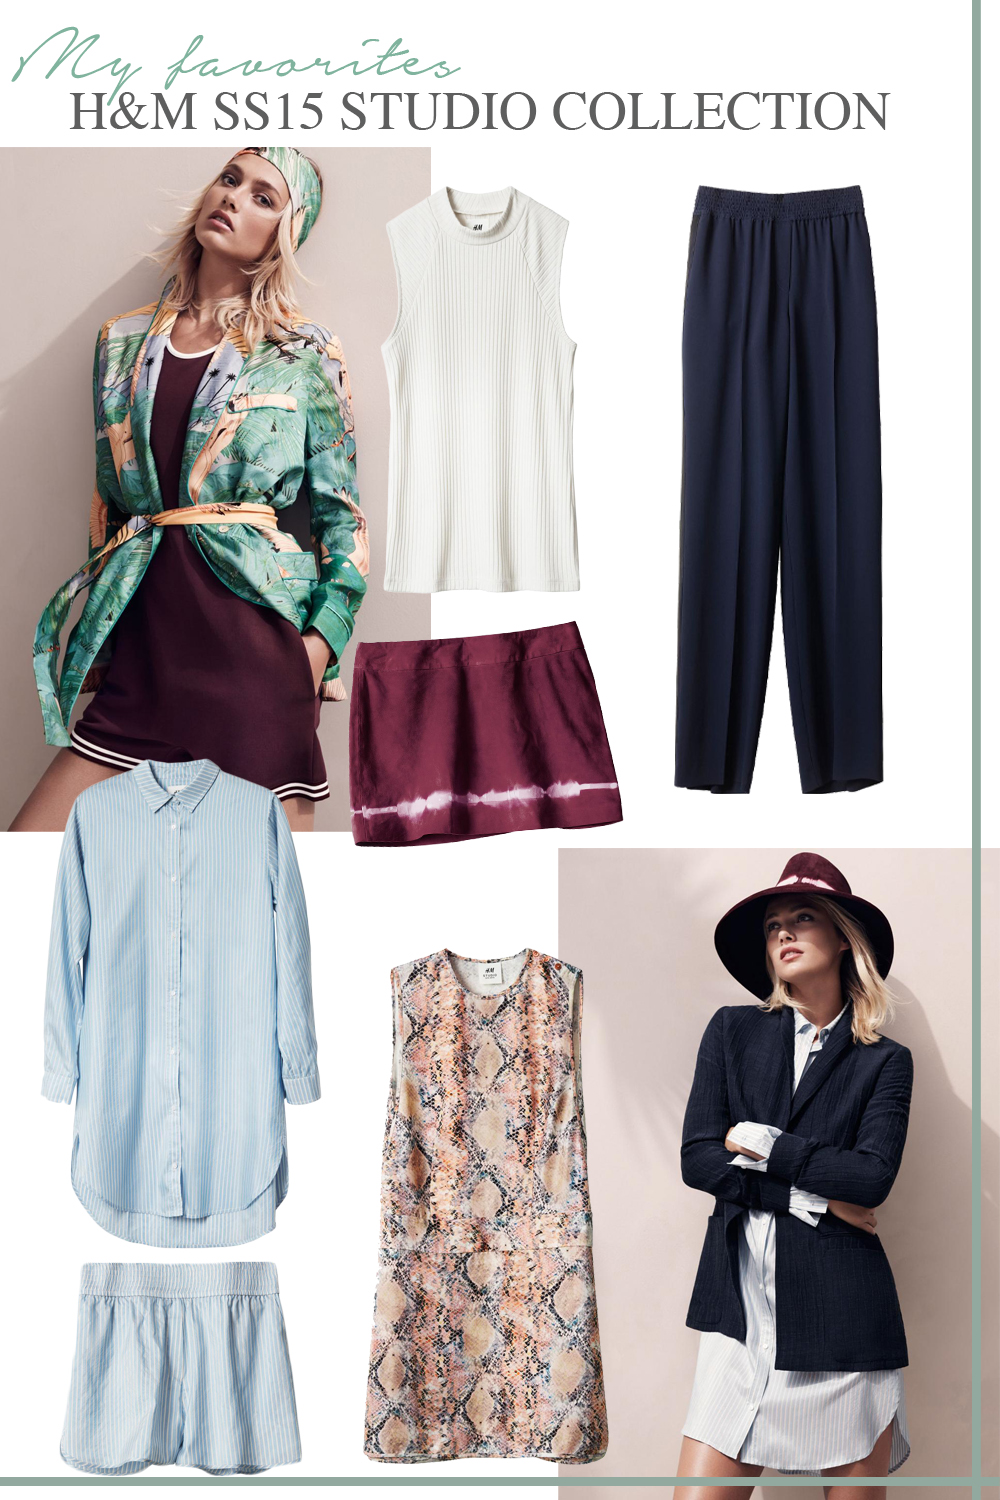 MY FAVORITES: H&M SS15 STUDIO COLLECTION!